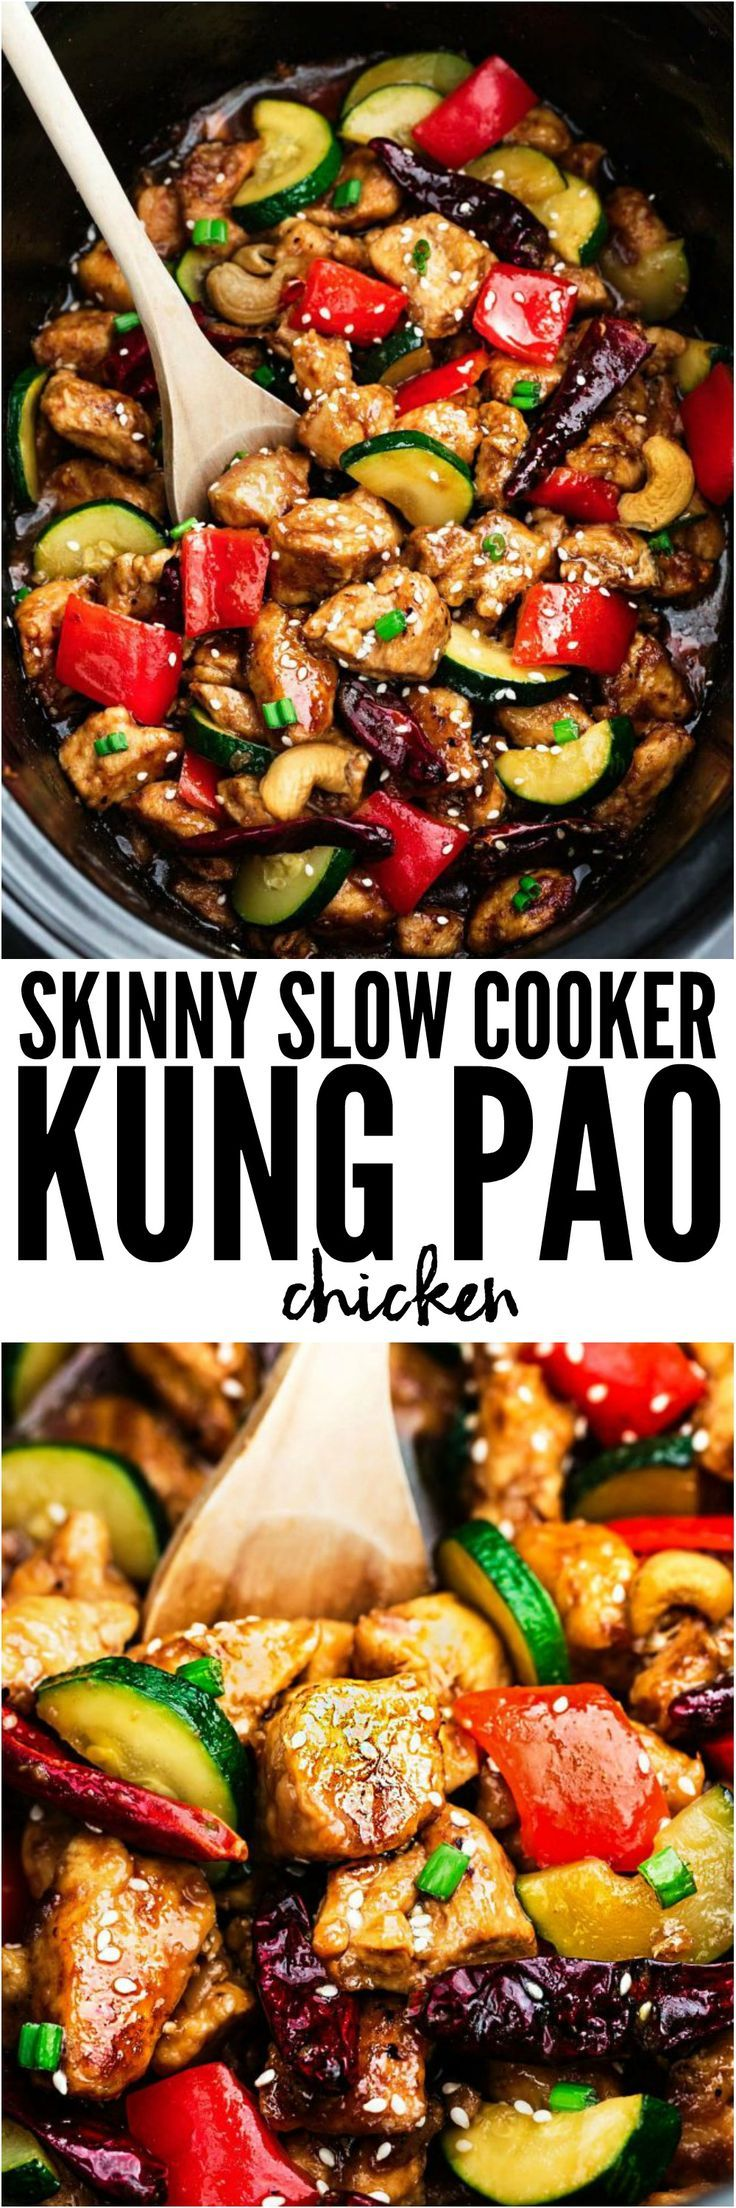 Skinny Slow Cooker Kung Pao Chicken | Healthy Blogger Recipes ...